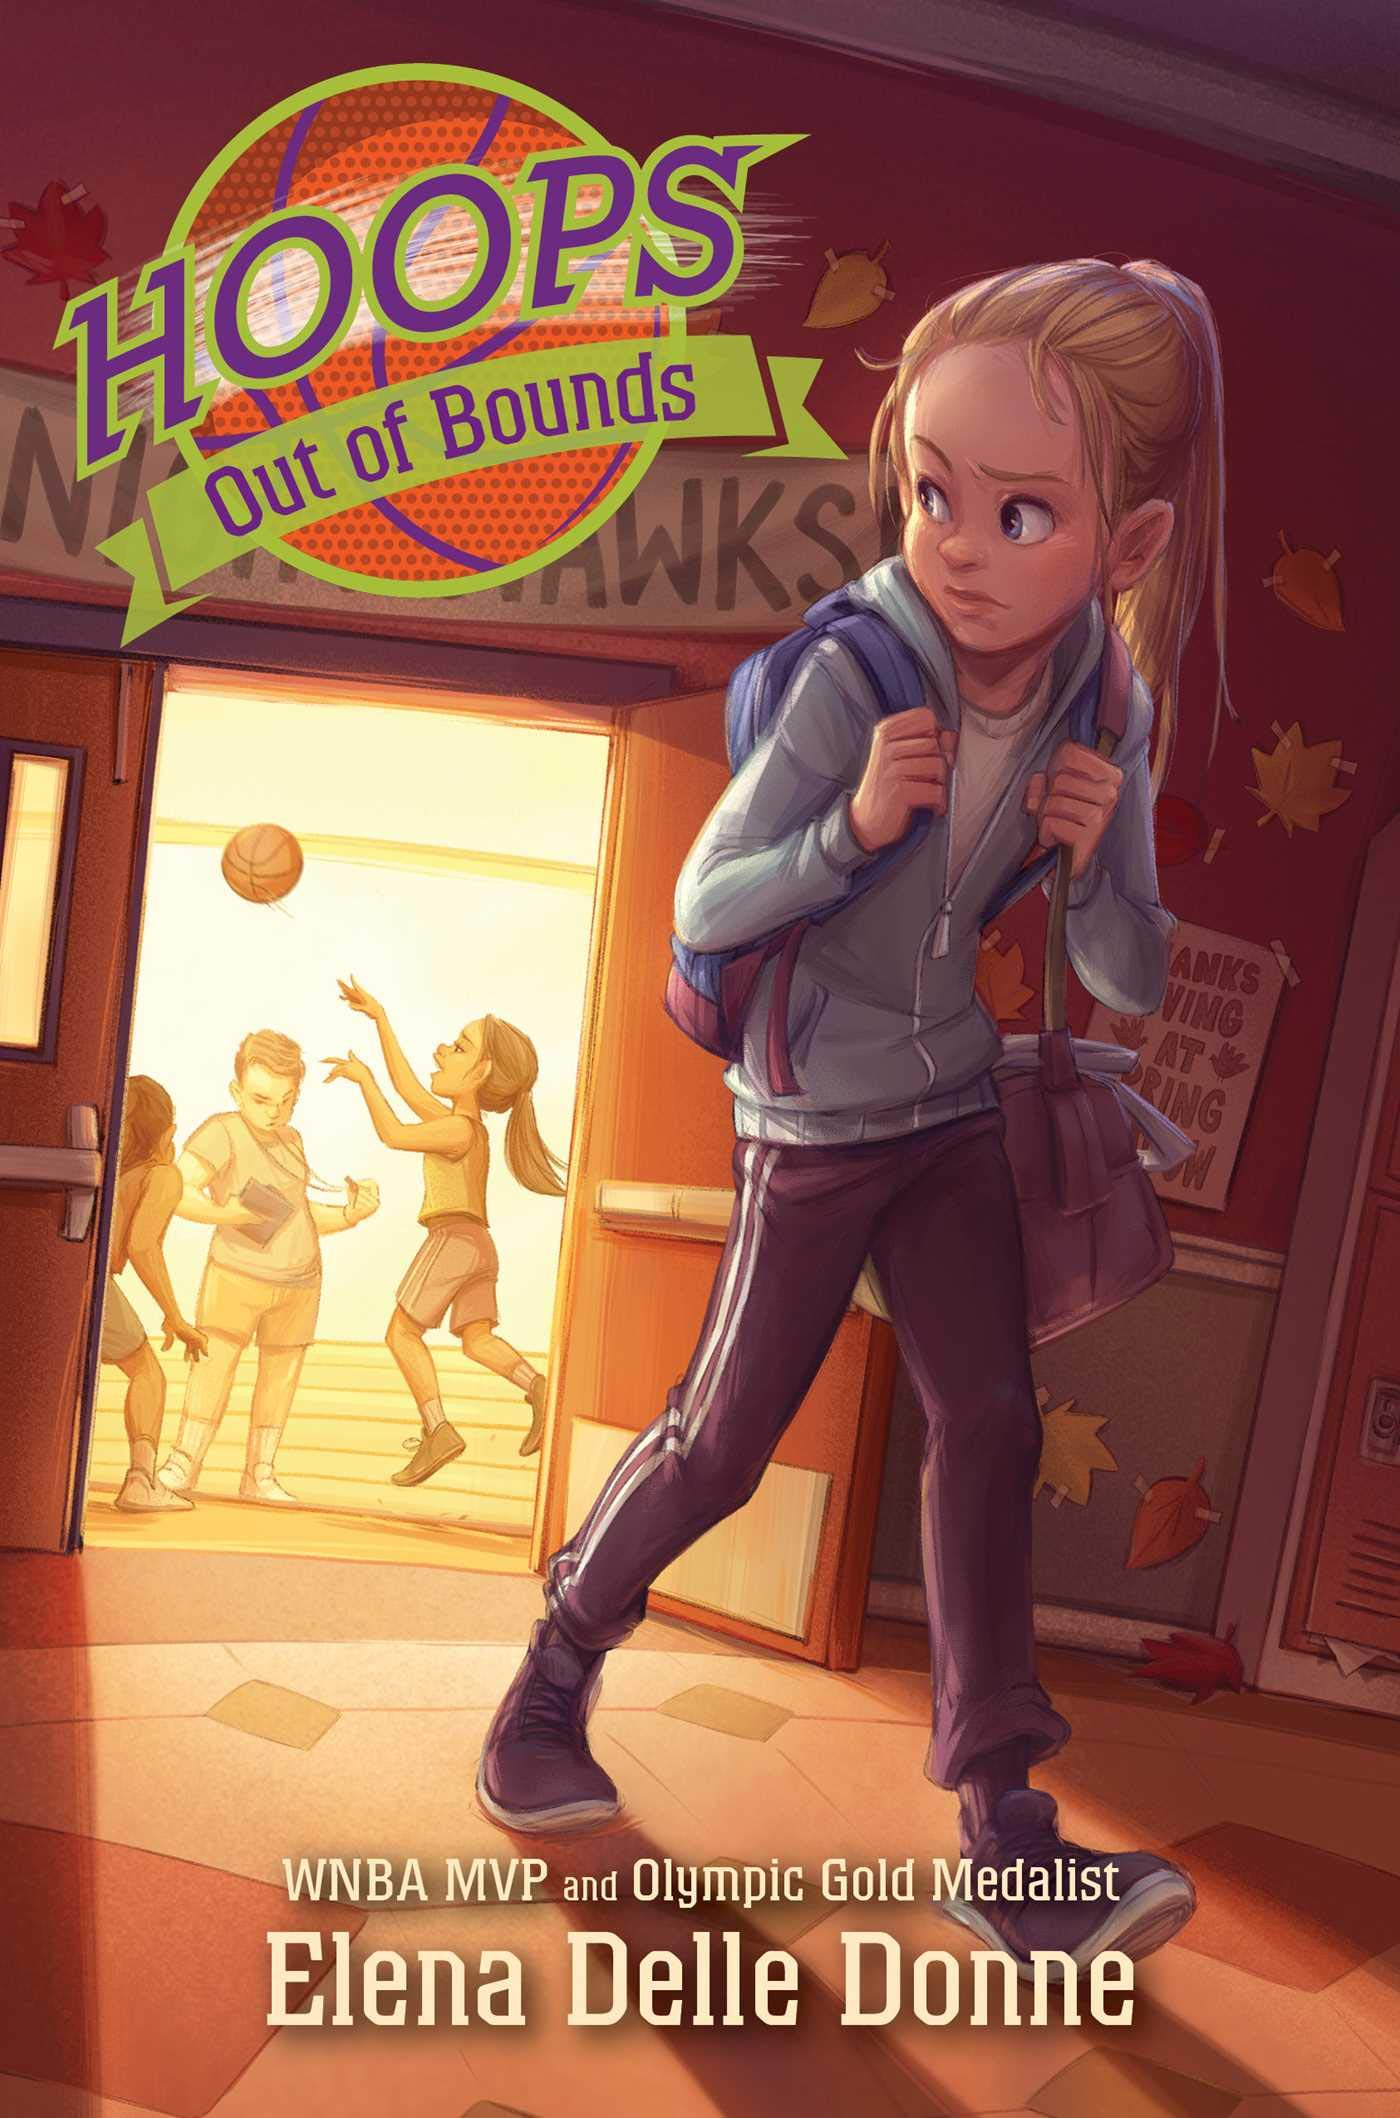 Out of Bounds (Hoops)